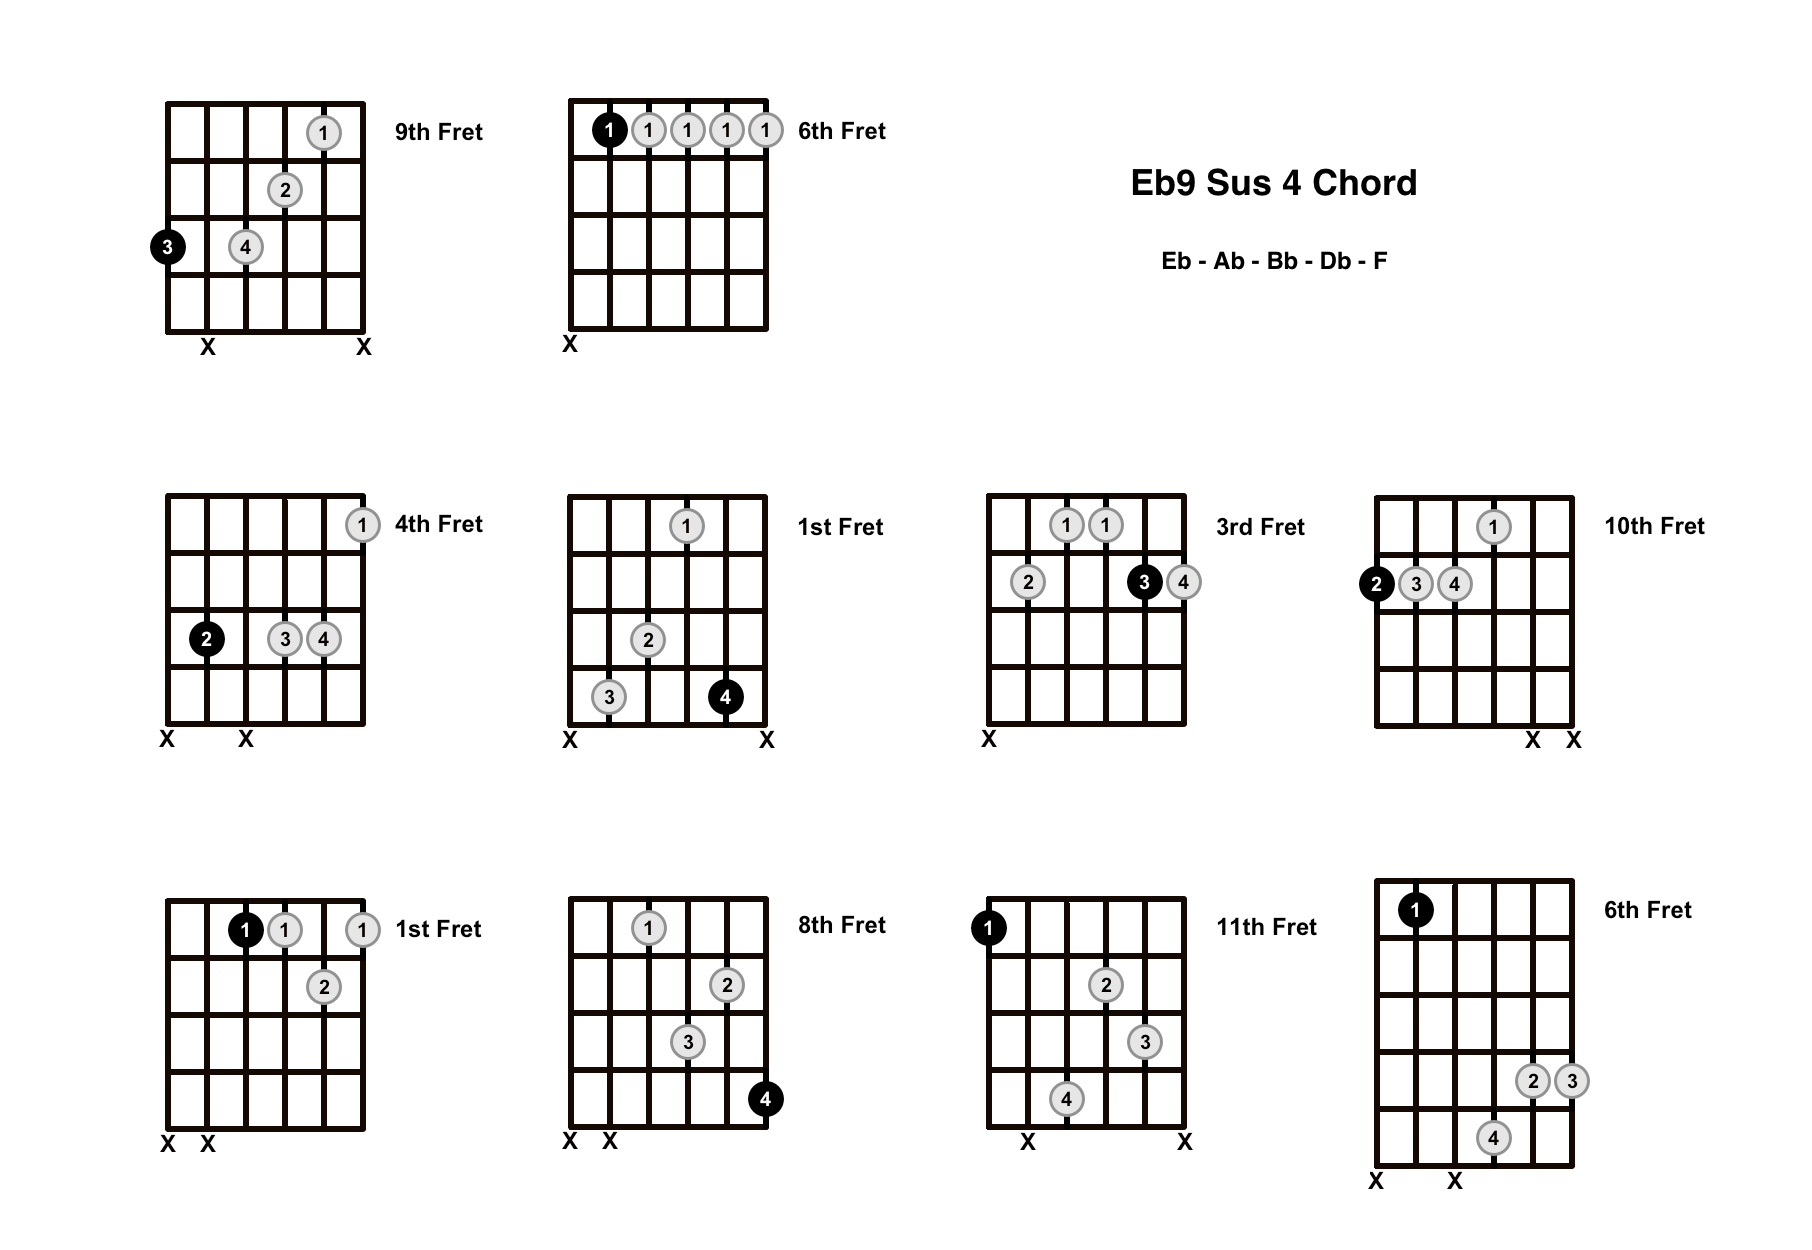 Eb9 Sus 4 Chord On The Guitar (E Flat 9 Suspended 4, Db/Eb) – Diagrams, Finger Positions and Theory